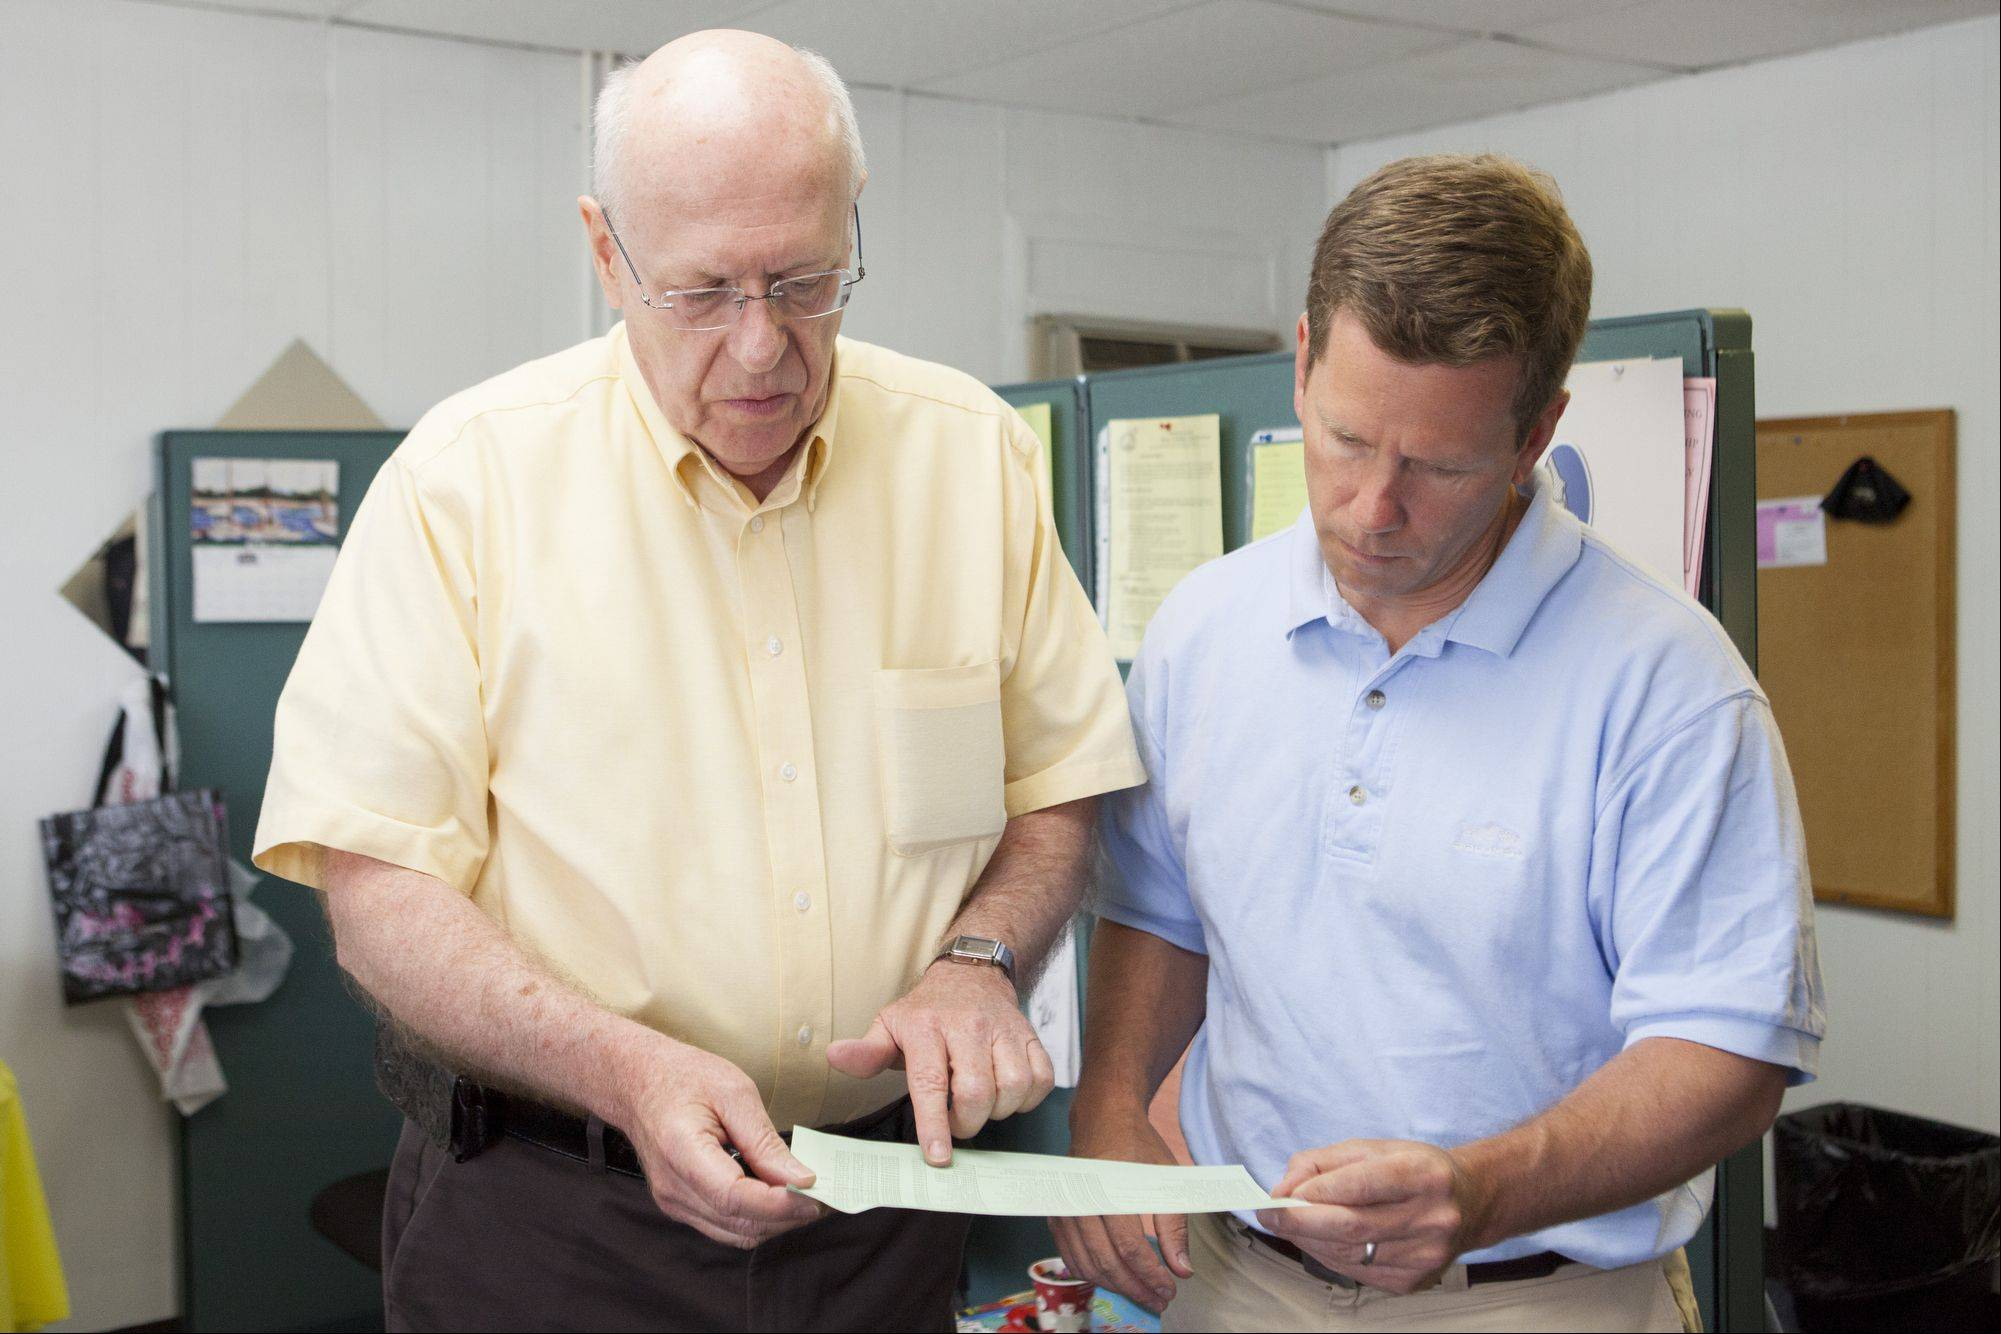 Jim Bradley shows a food schedule to Congressman Bob Dold, who visited the pantry on Monday.